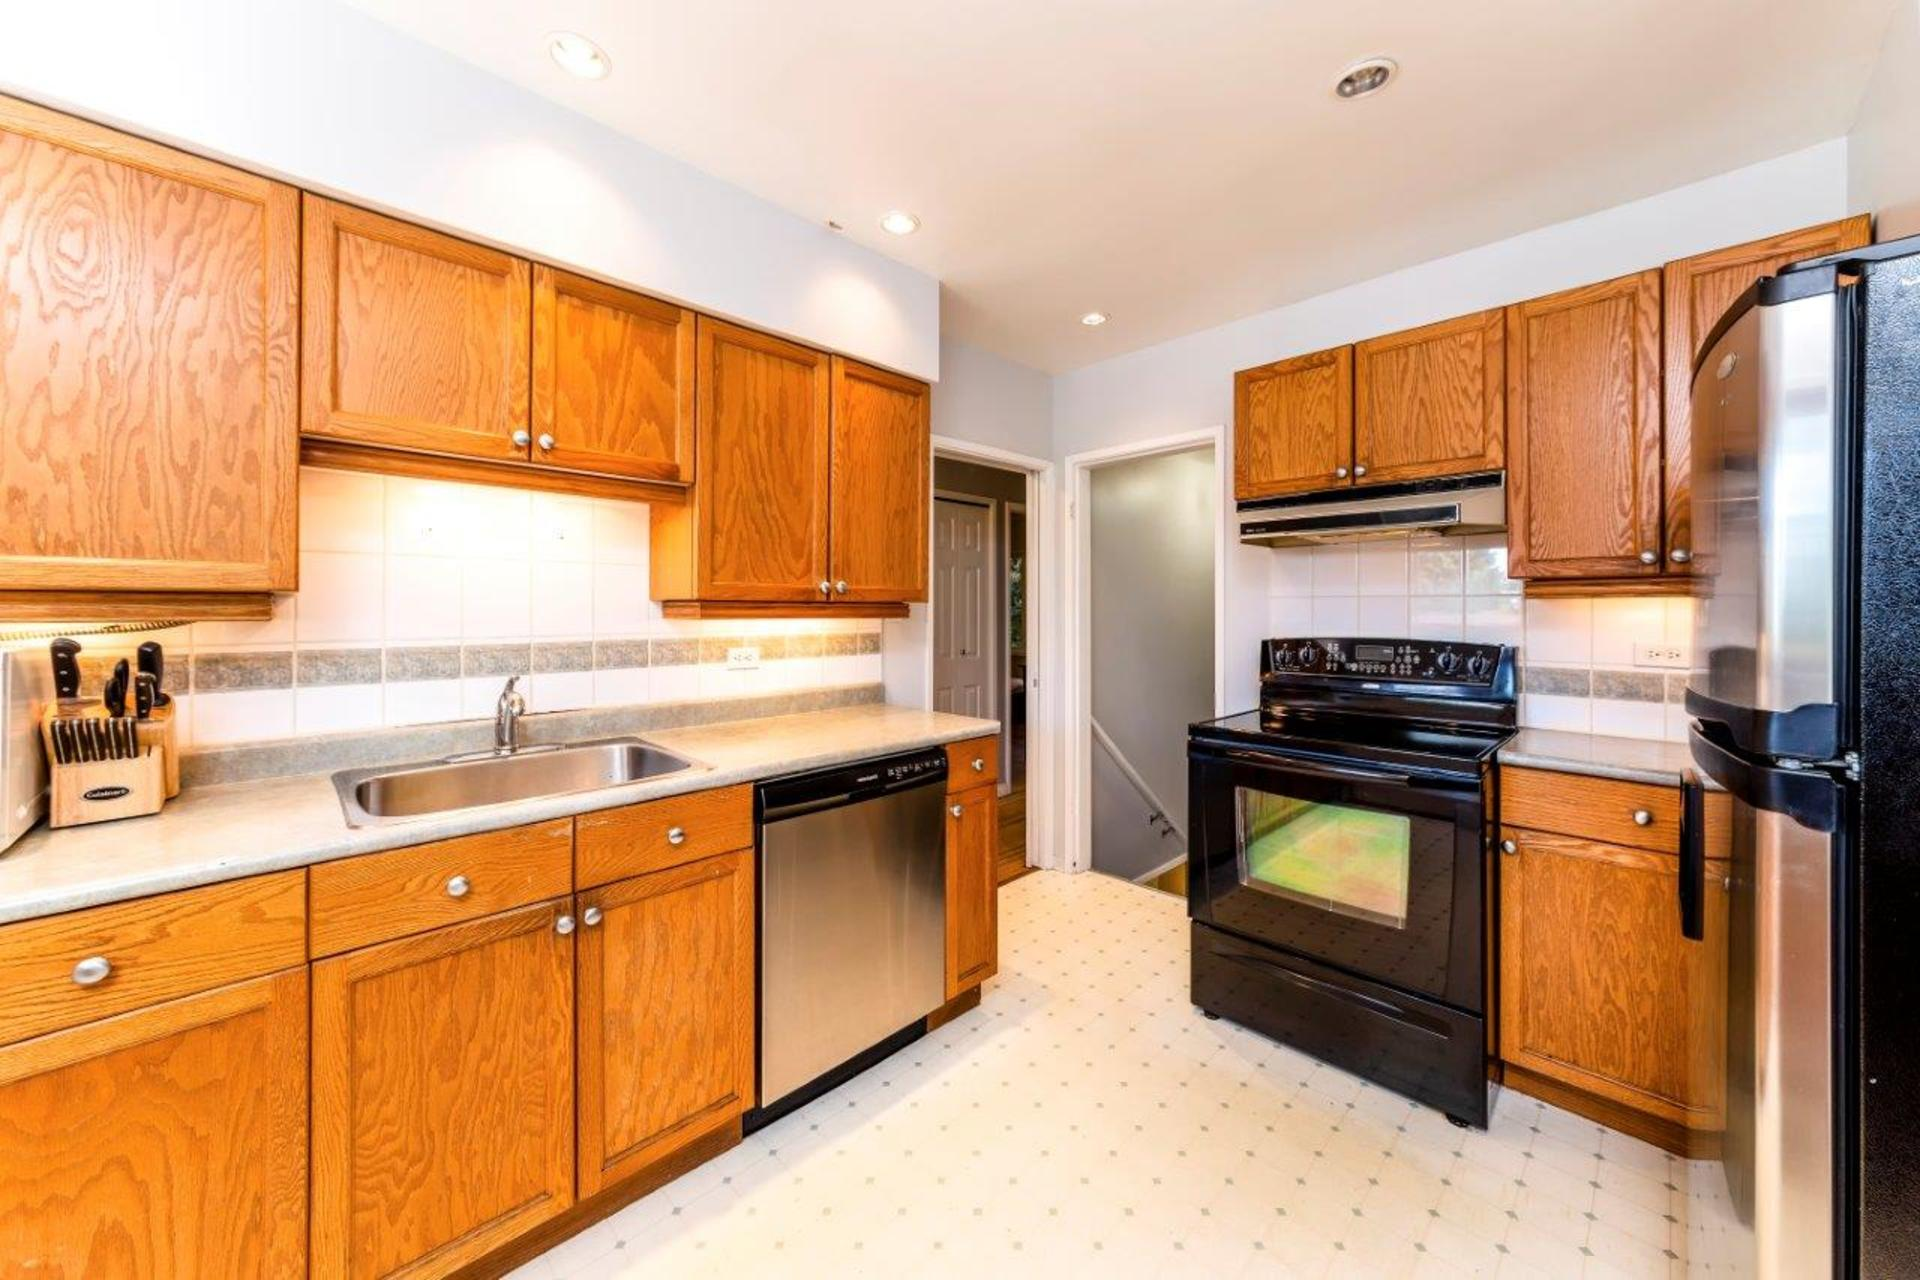 419w26-21 at 419 West 26th Street, Upper Lonsdale, North Vancouver